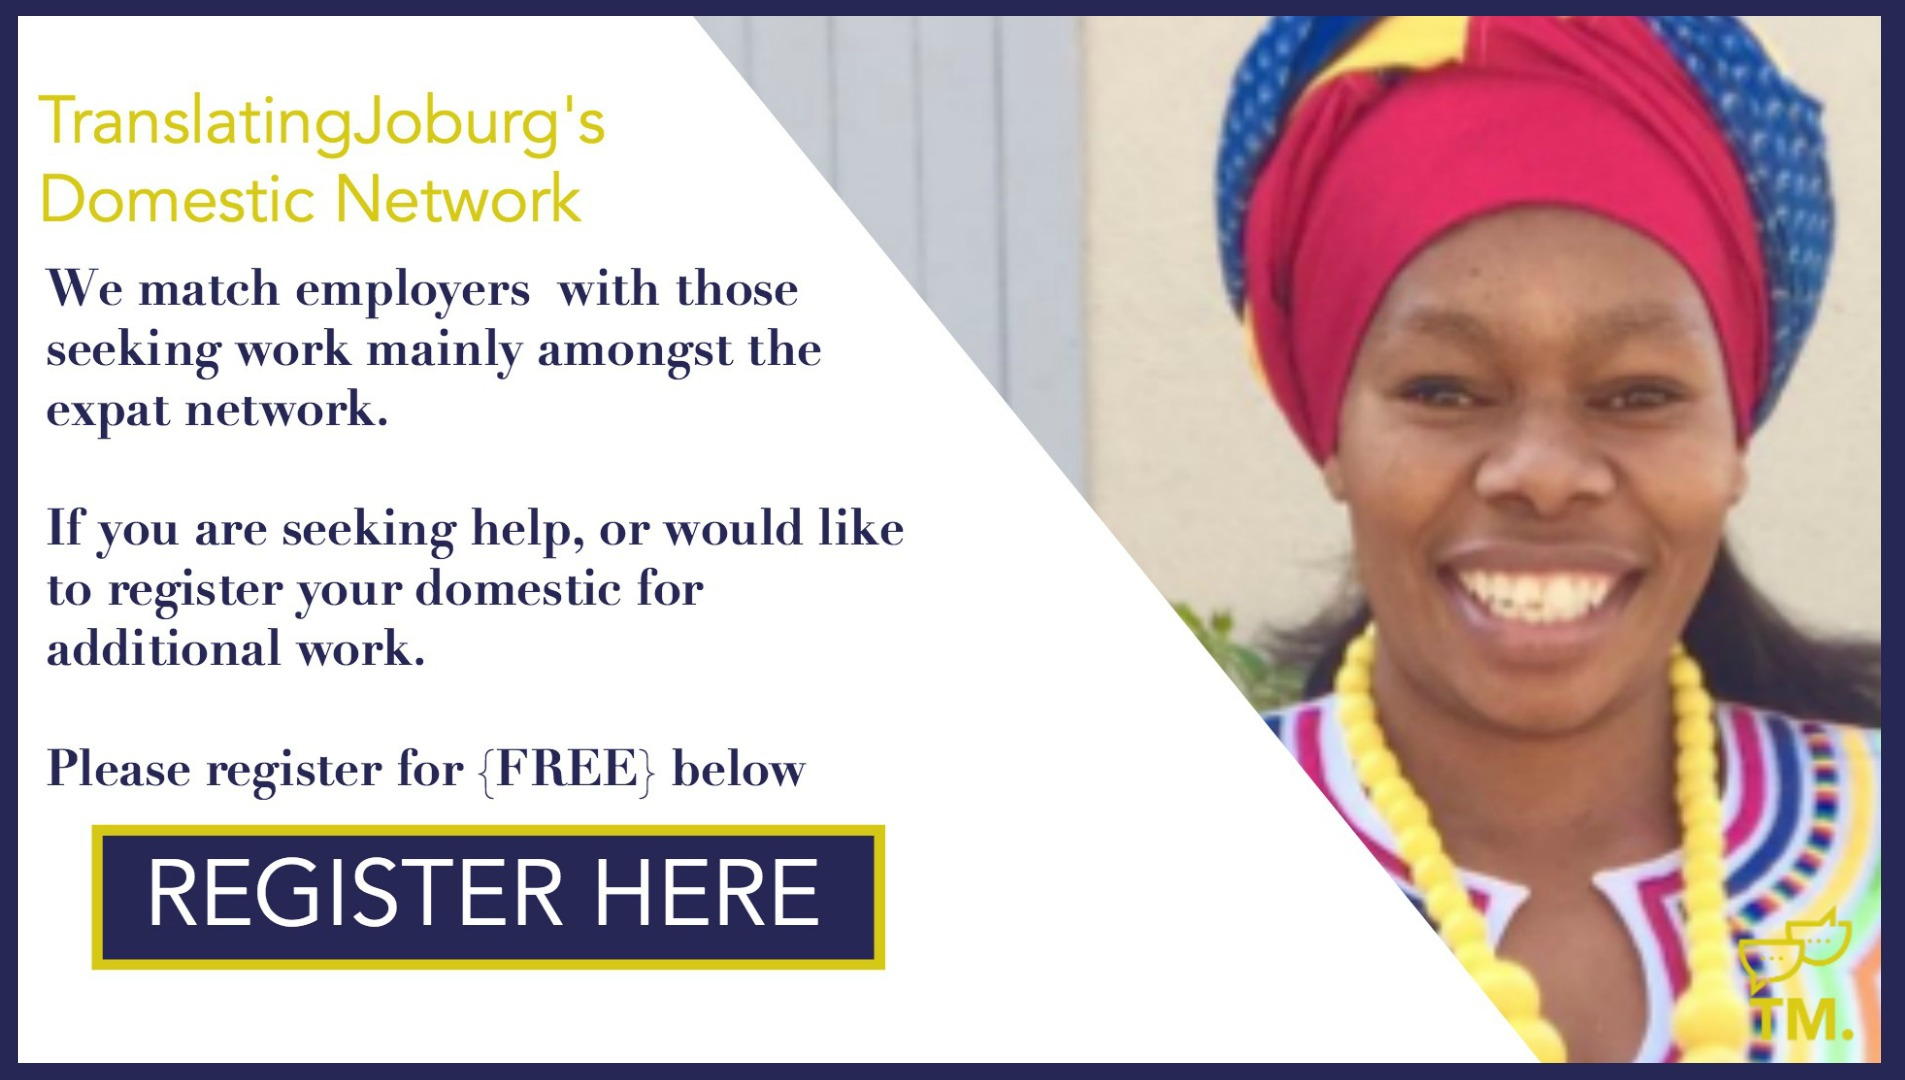 hiring domestic work in South Africa